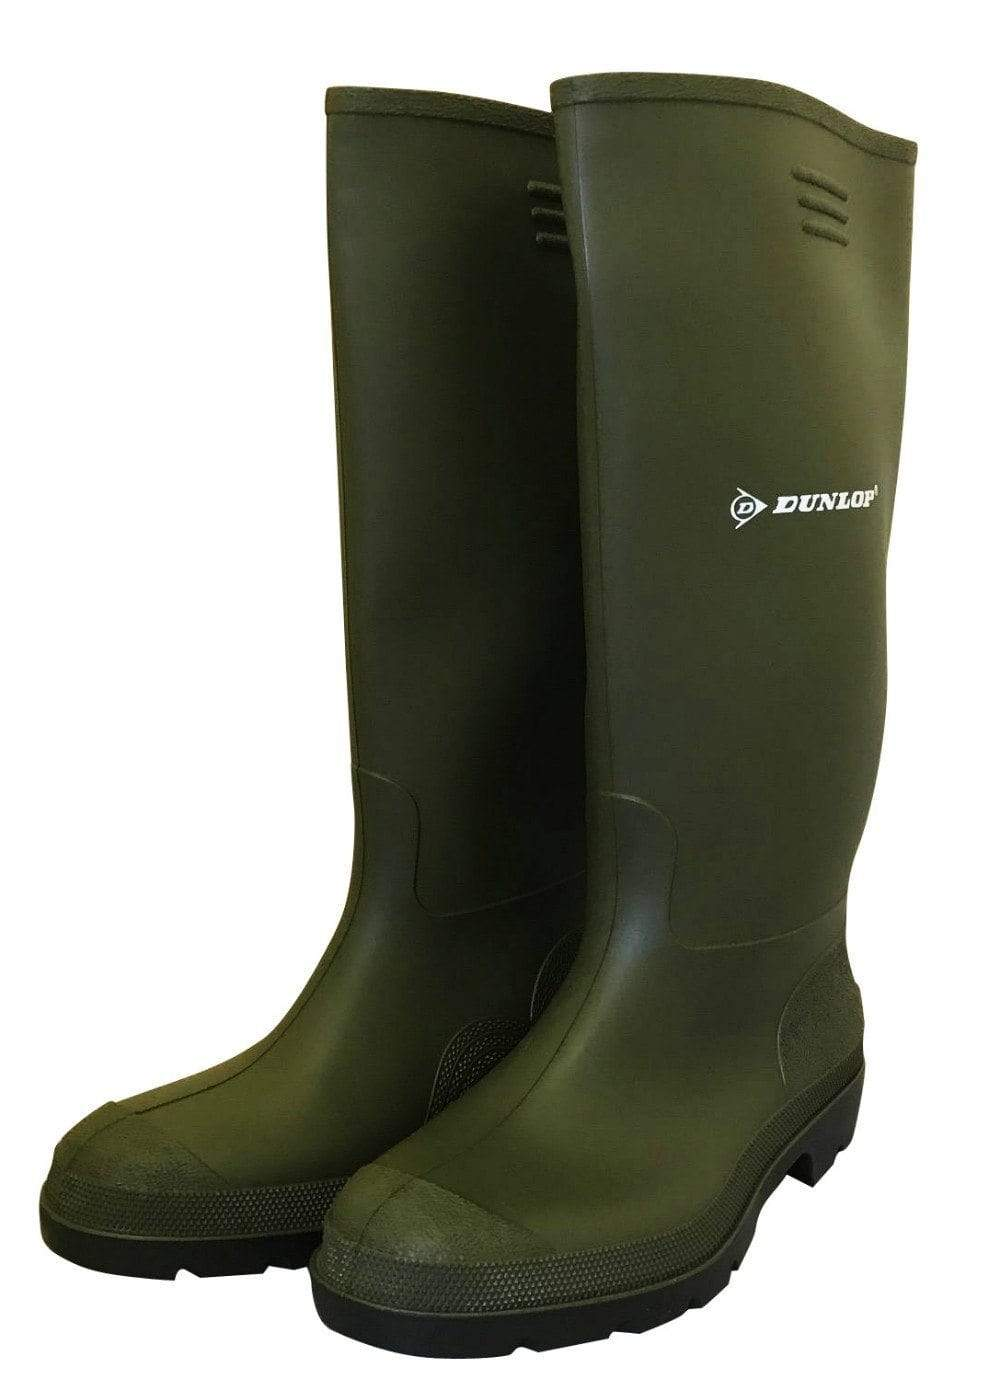 Budget Master Green Wellies by Dunlop - Wide Calf Wellies for Women